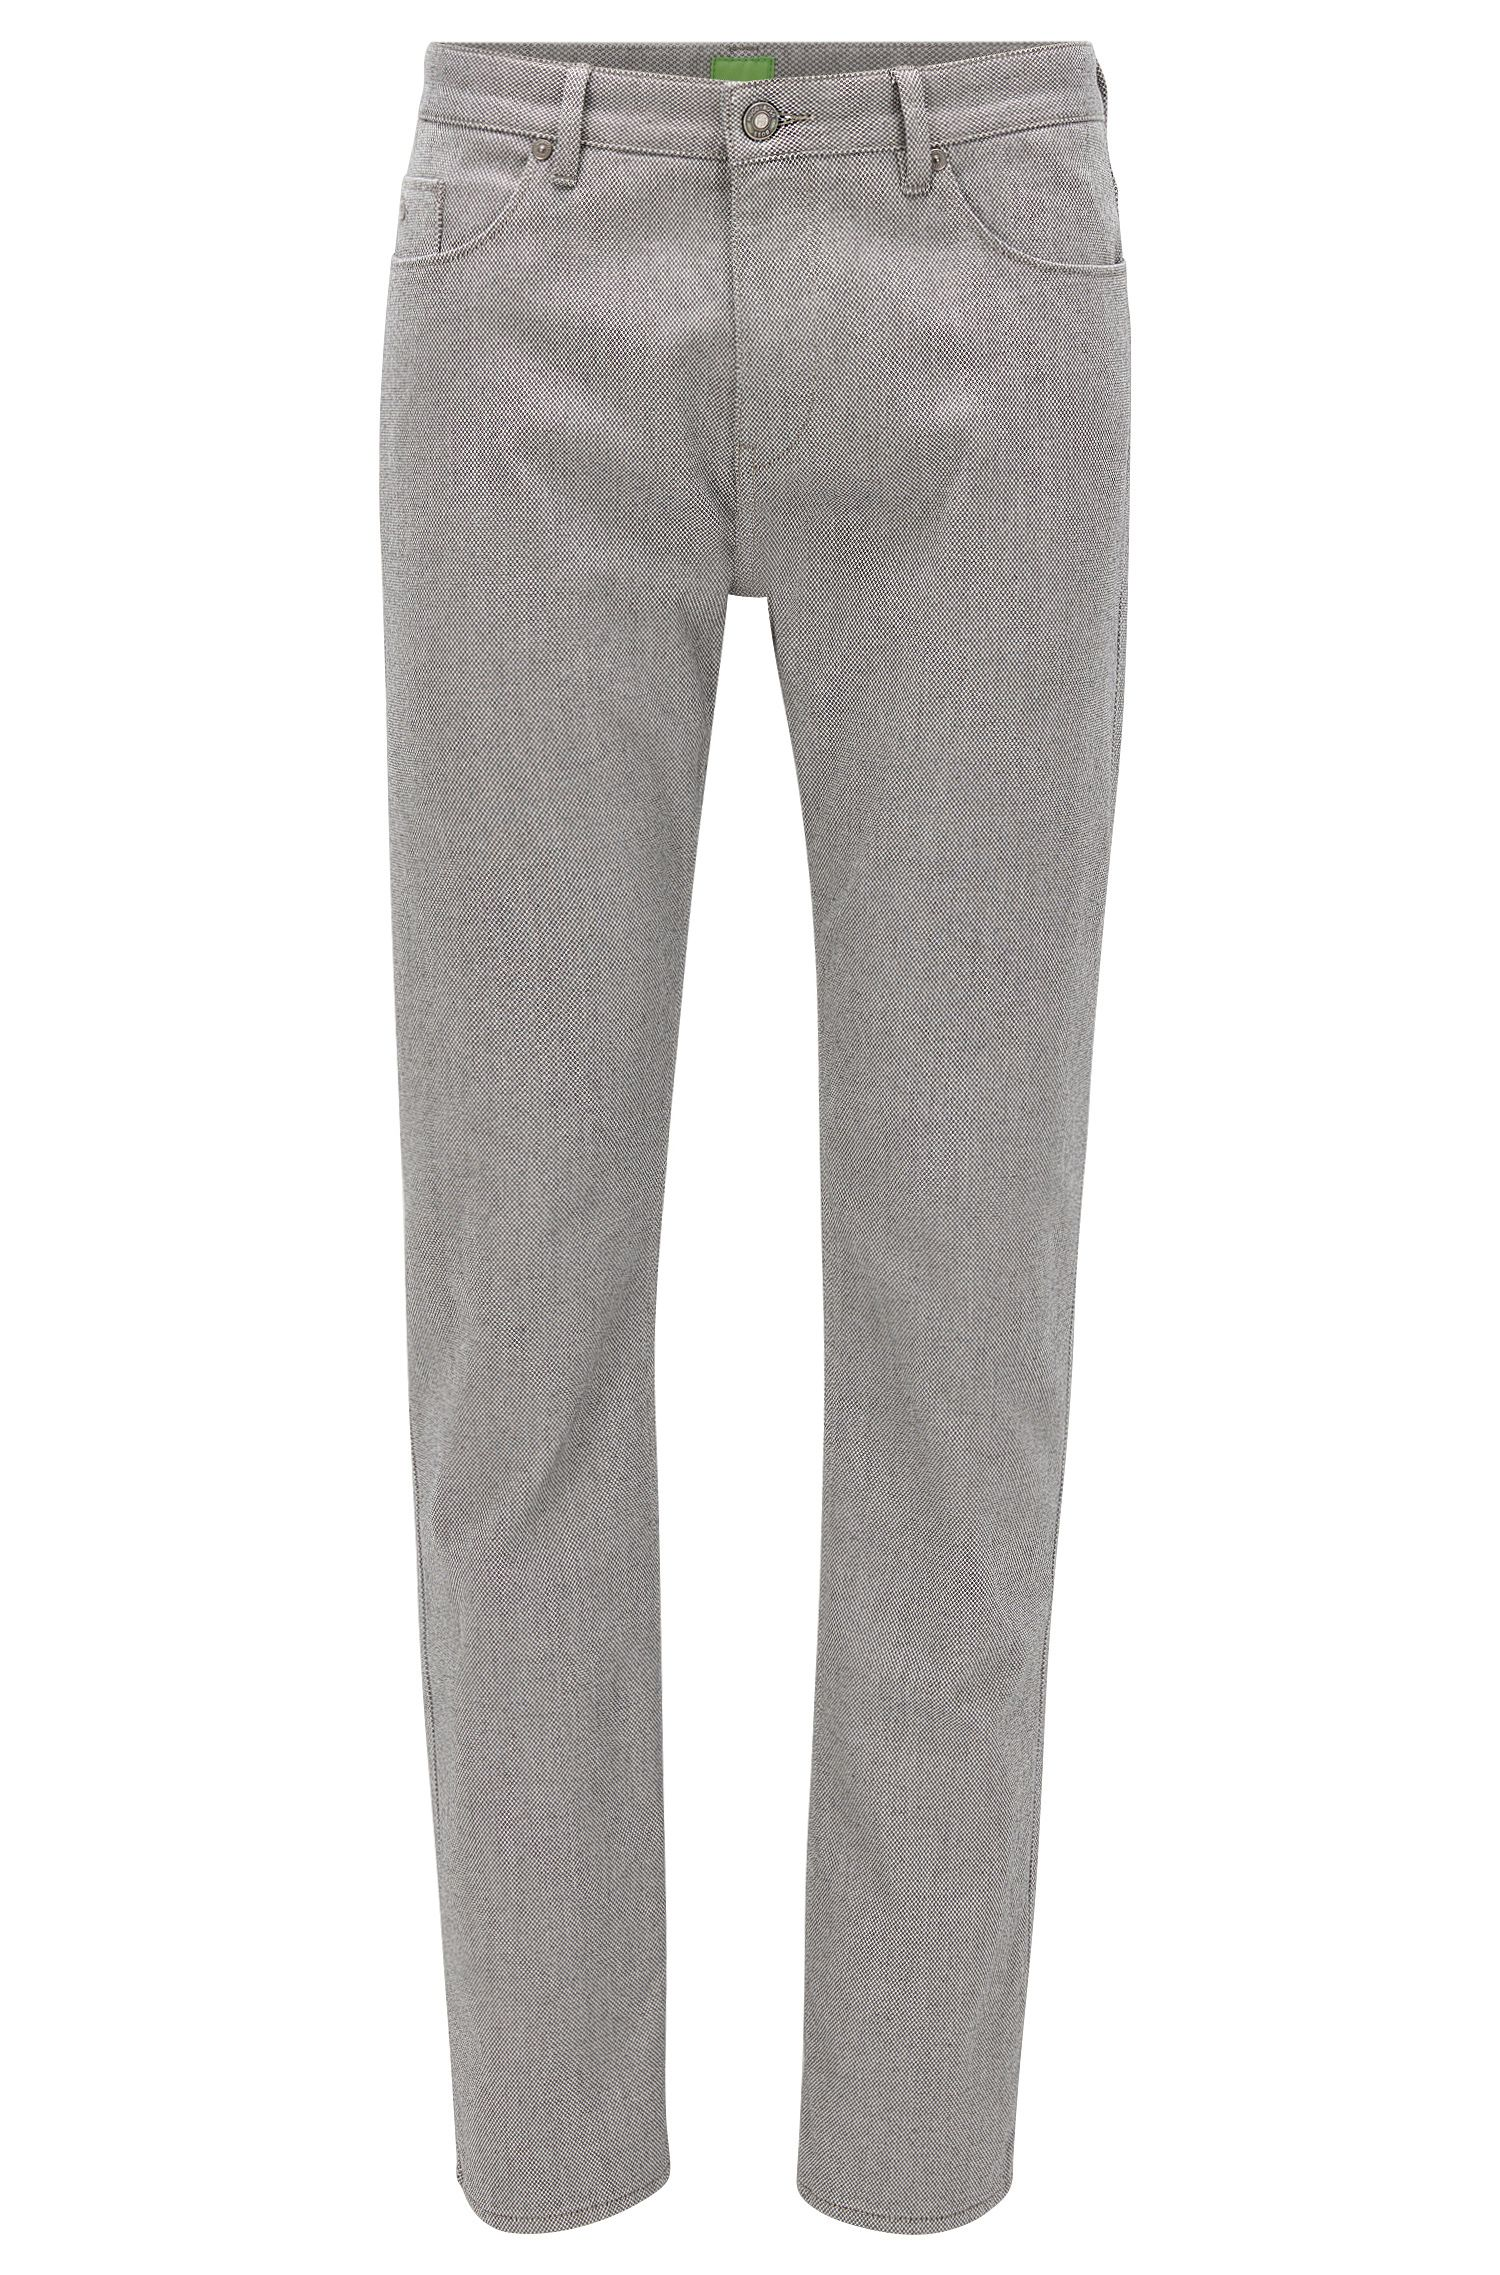 Pantaloni slim fit in cotone double-face a occhio di pernice